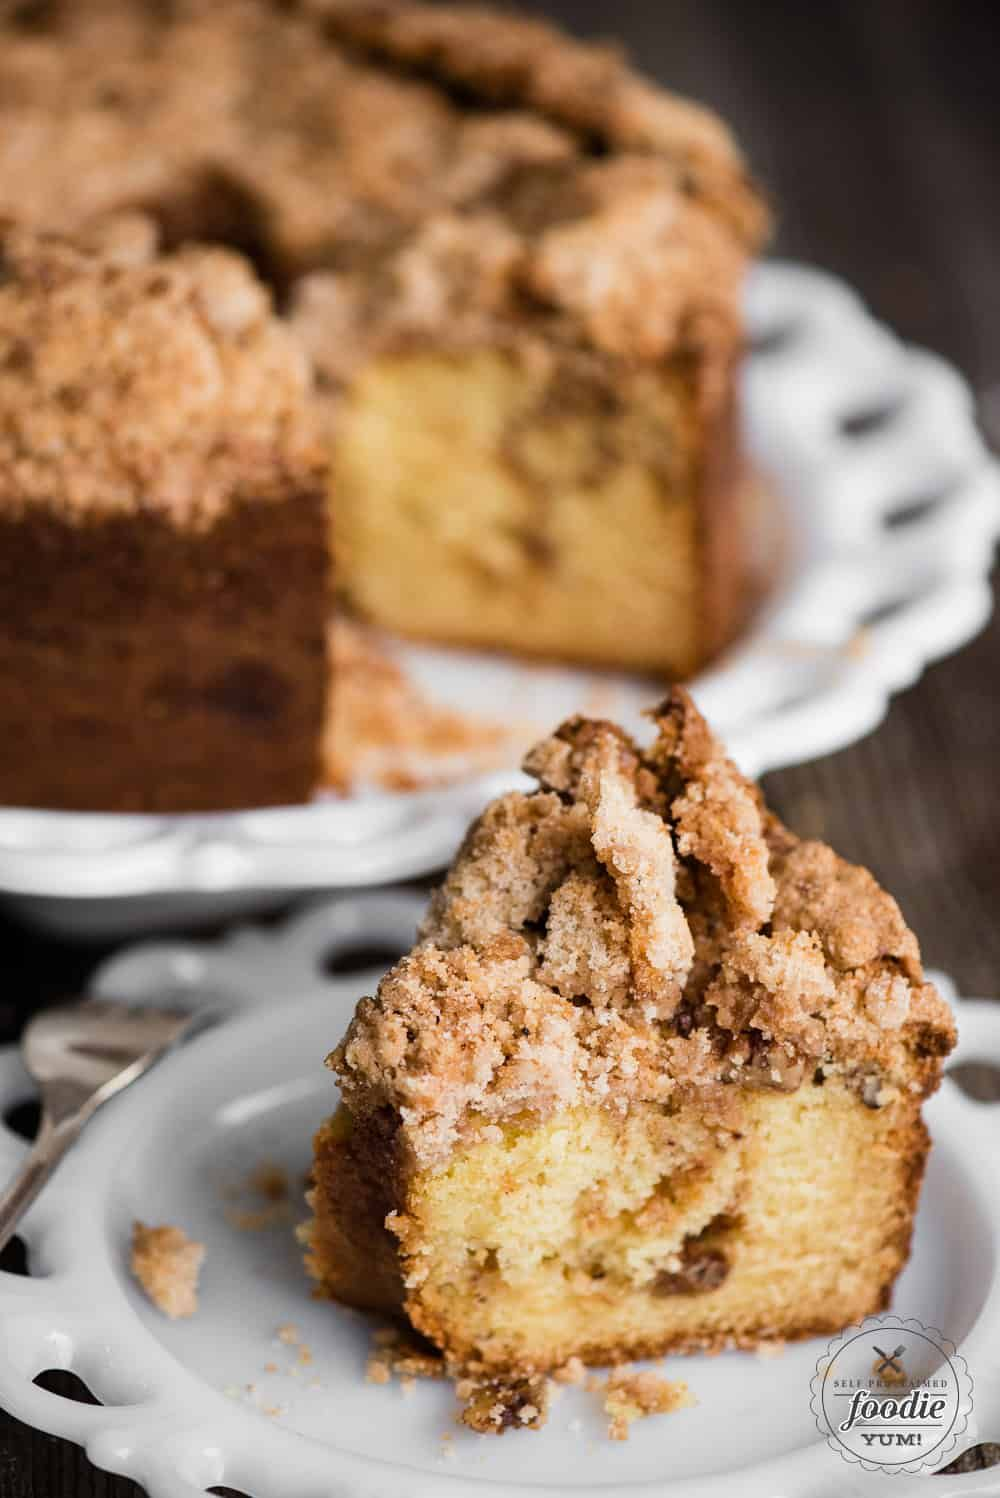 Sour Cream Coffee Cake With A Sweet And Crunchy Streusel Topping And A Cinnamon Sugar Laye Coffee Cake Recipes Sour Cream Coffee Cake Coffee Cake Recipe Bundt